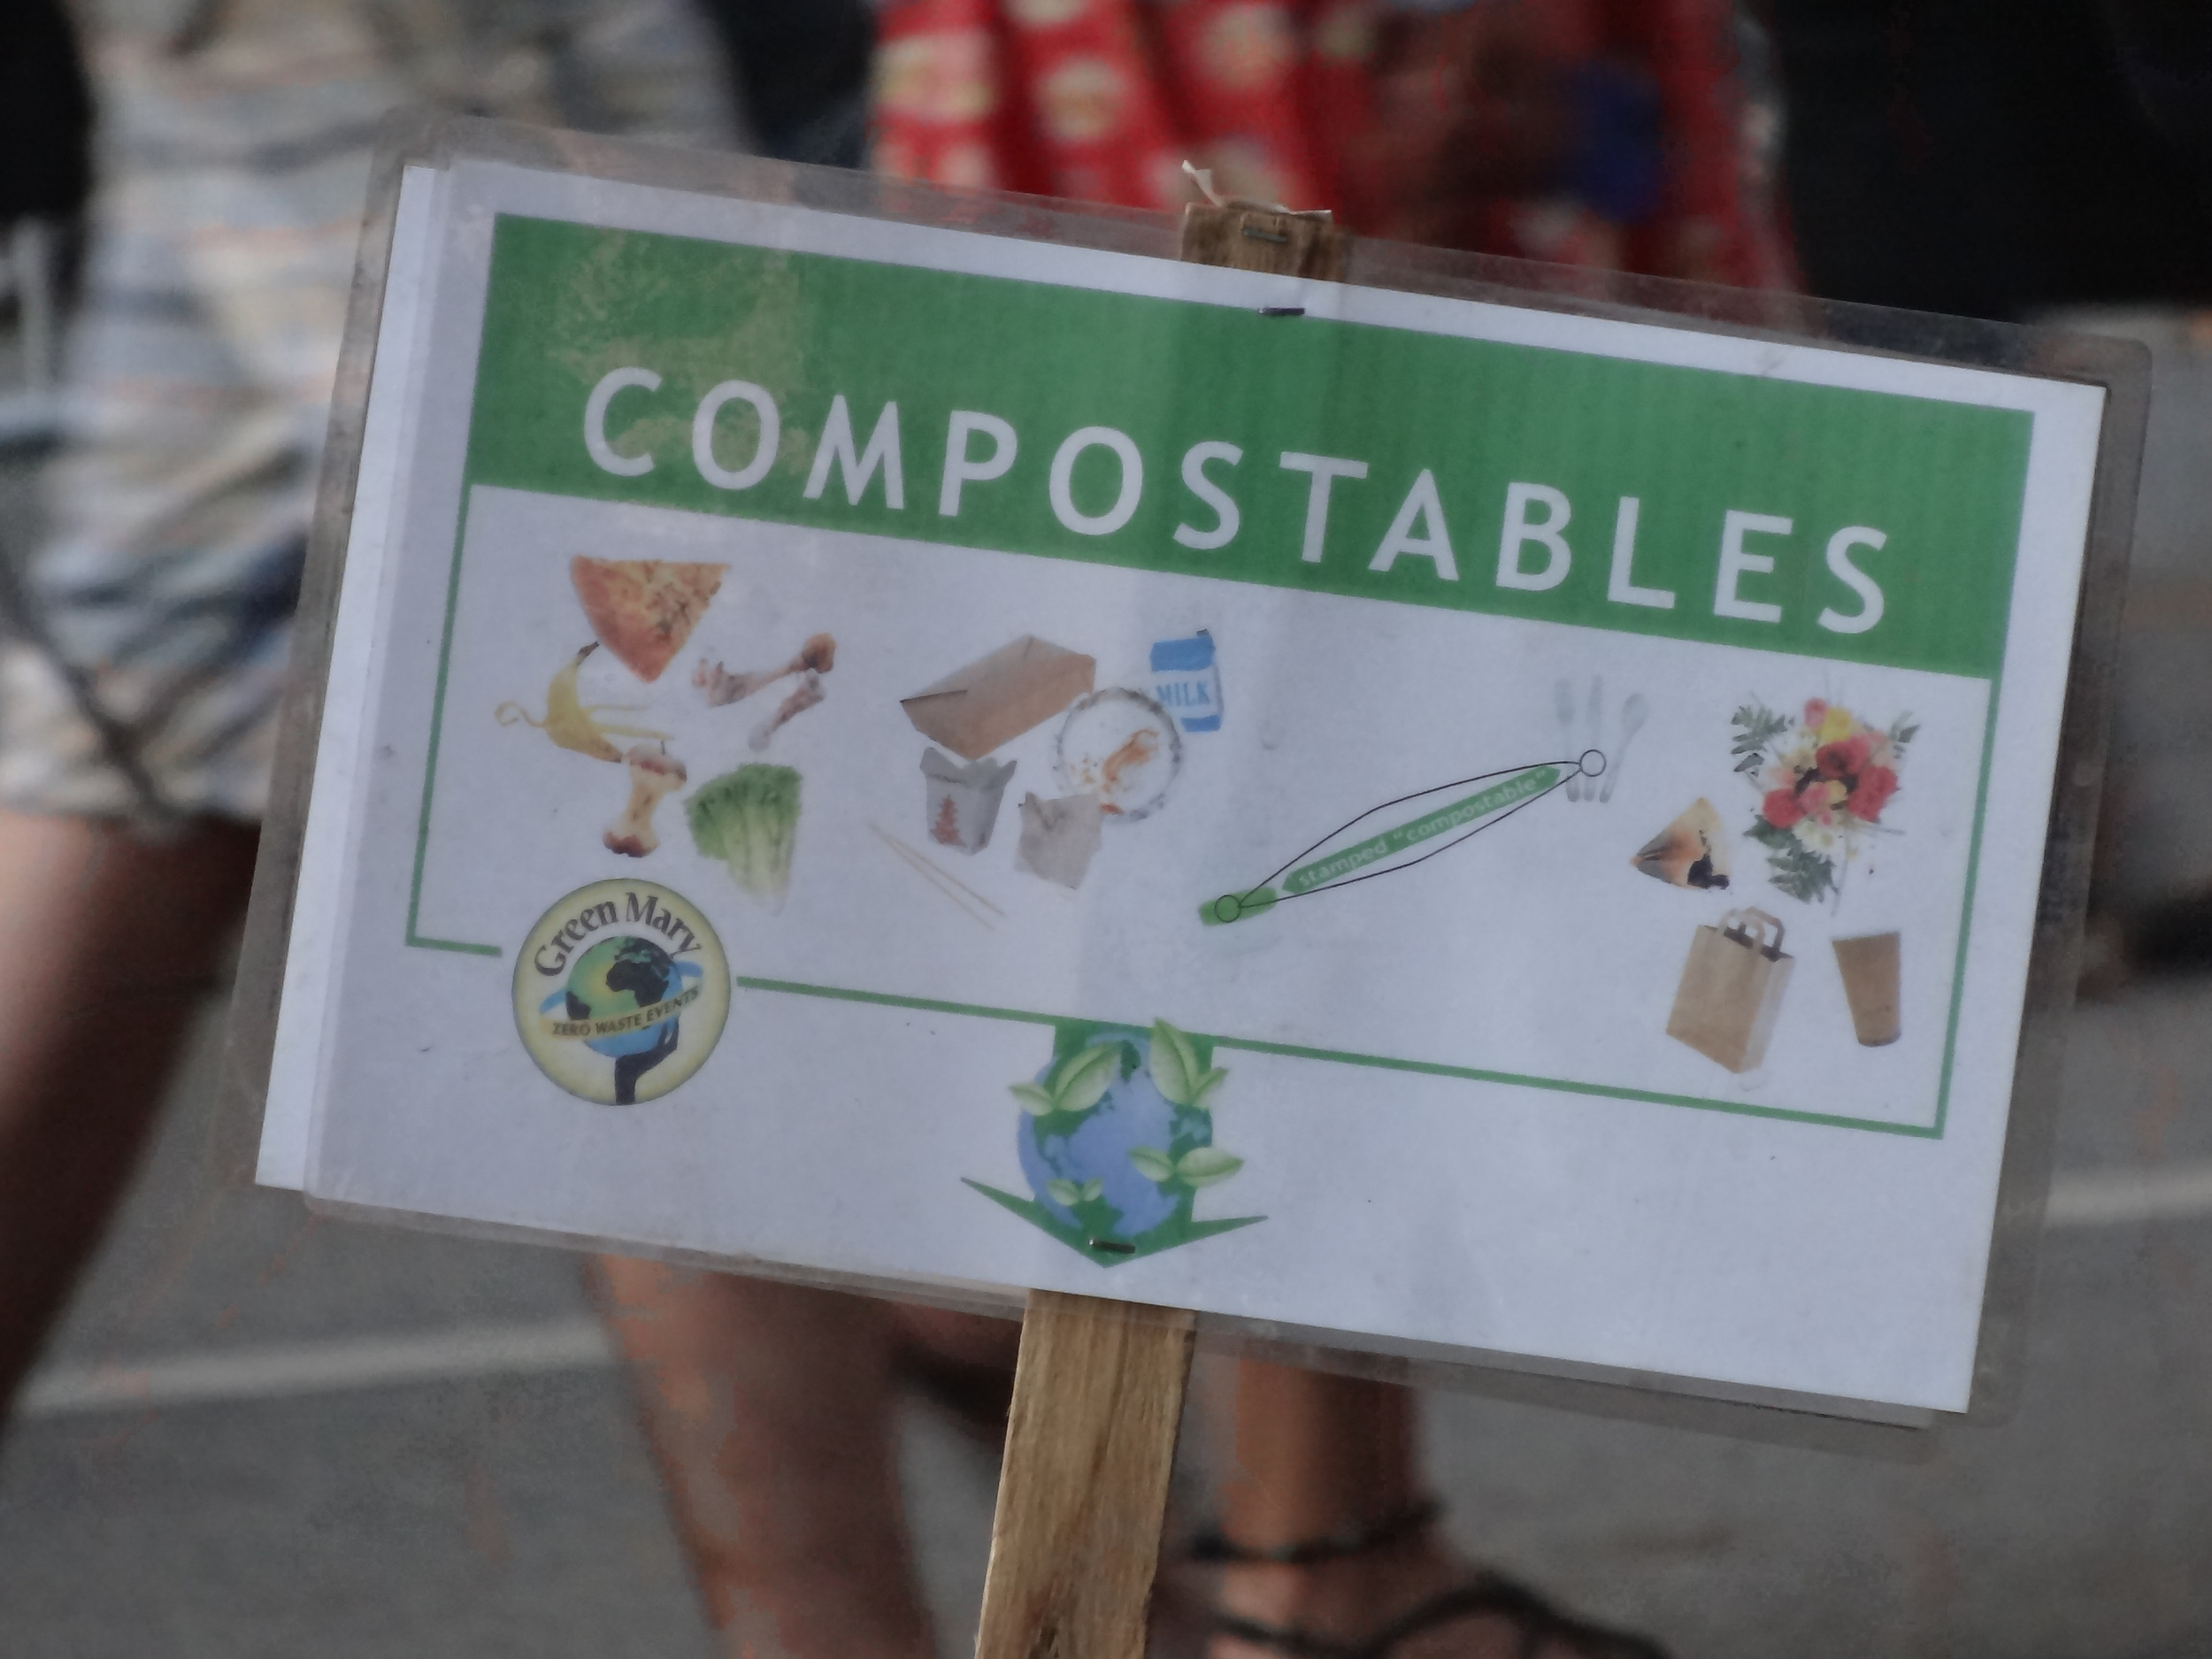 Composting, recycling...whatever it is: make it easy for your audience!